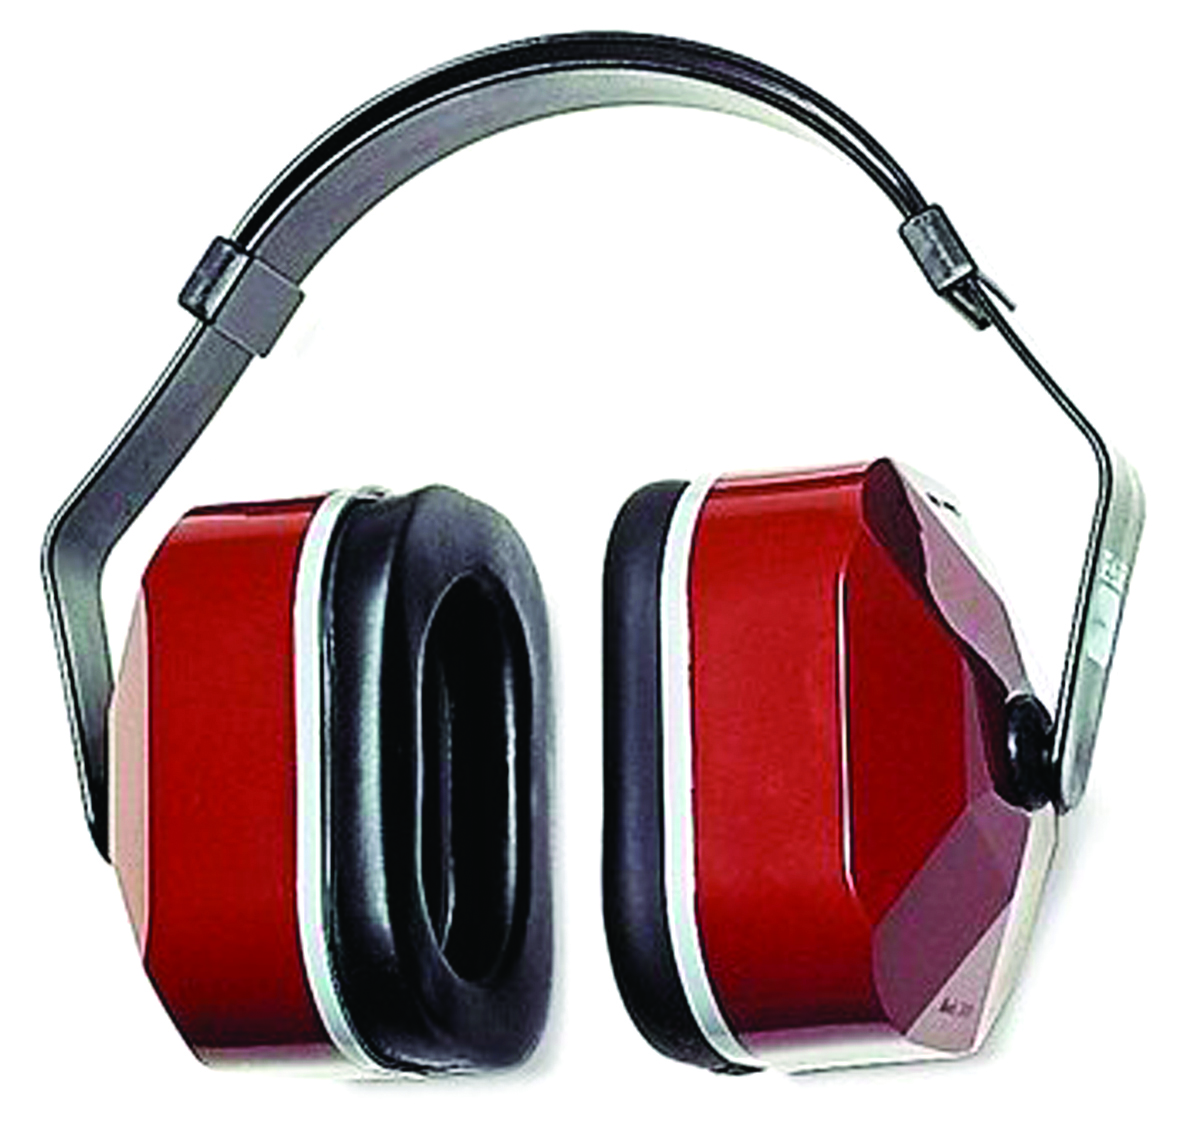 330-3002 - 3M™ Model 3000 Earmuffs-One Size Fits Most-----UOM: 1/EA